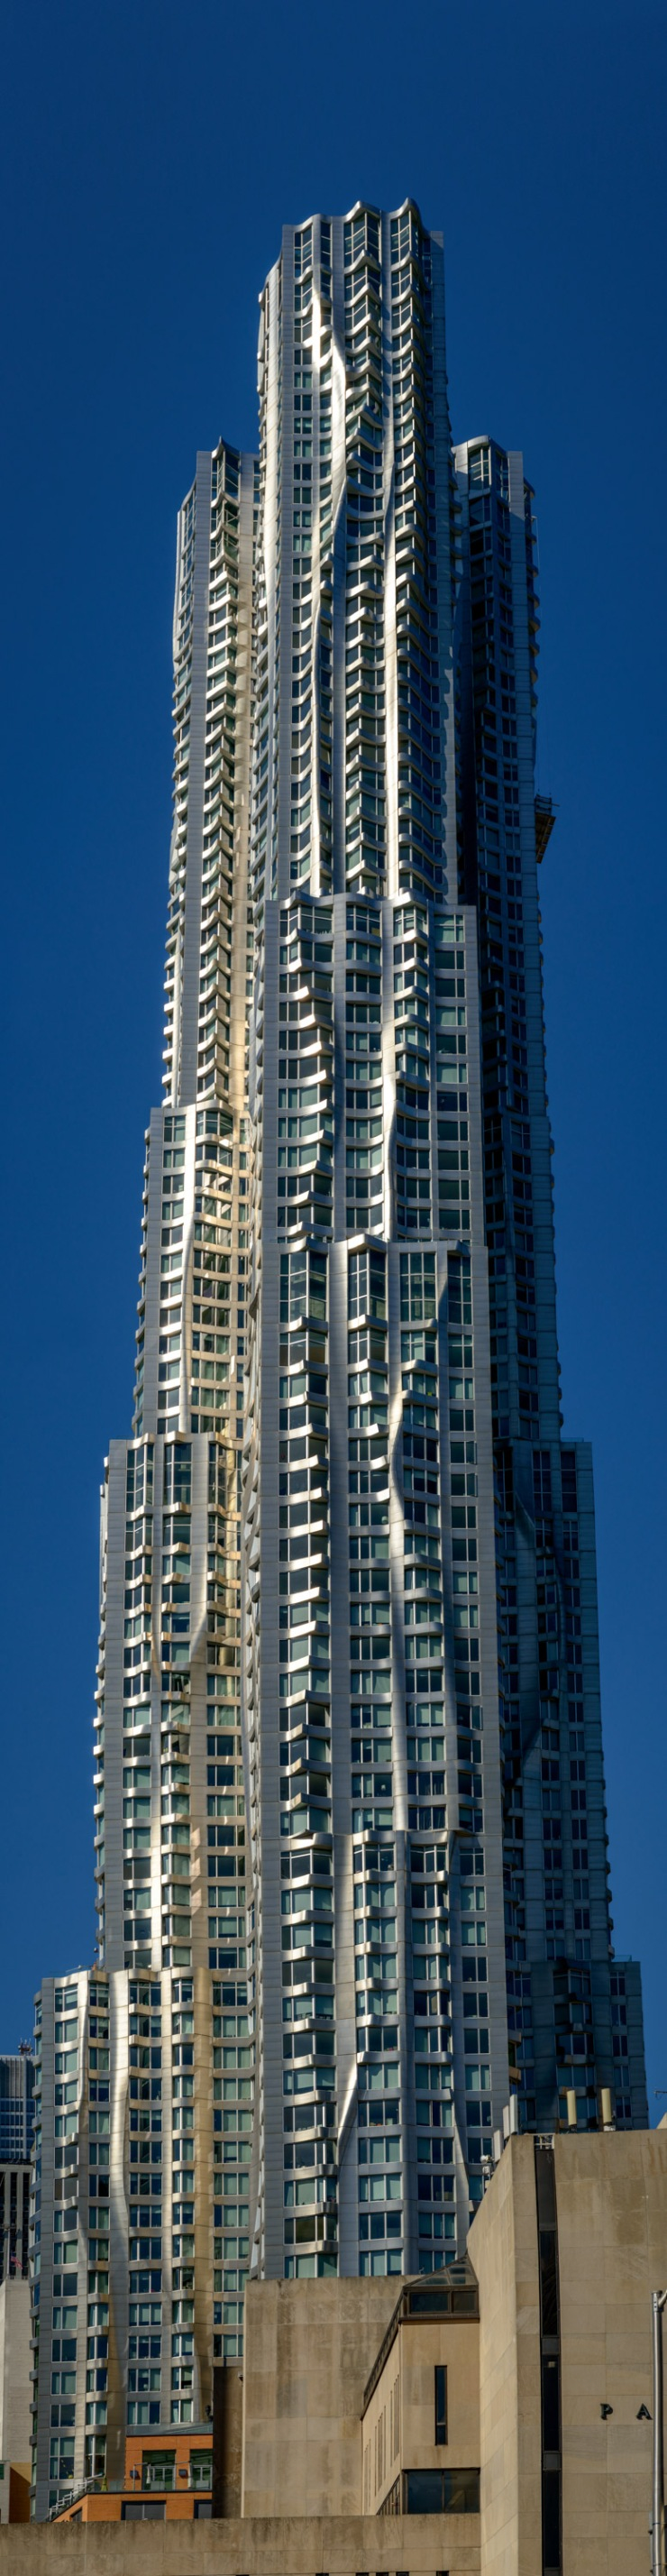 Frank Gehry designed residential tower in Lower Manhattan.